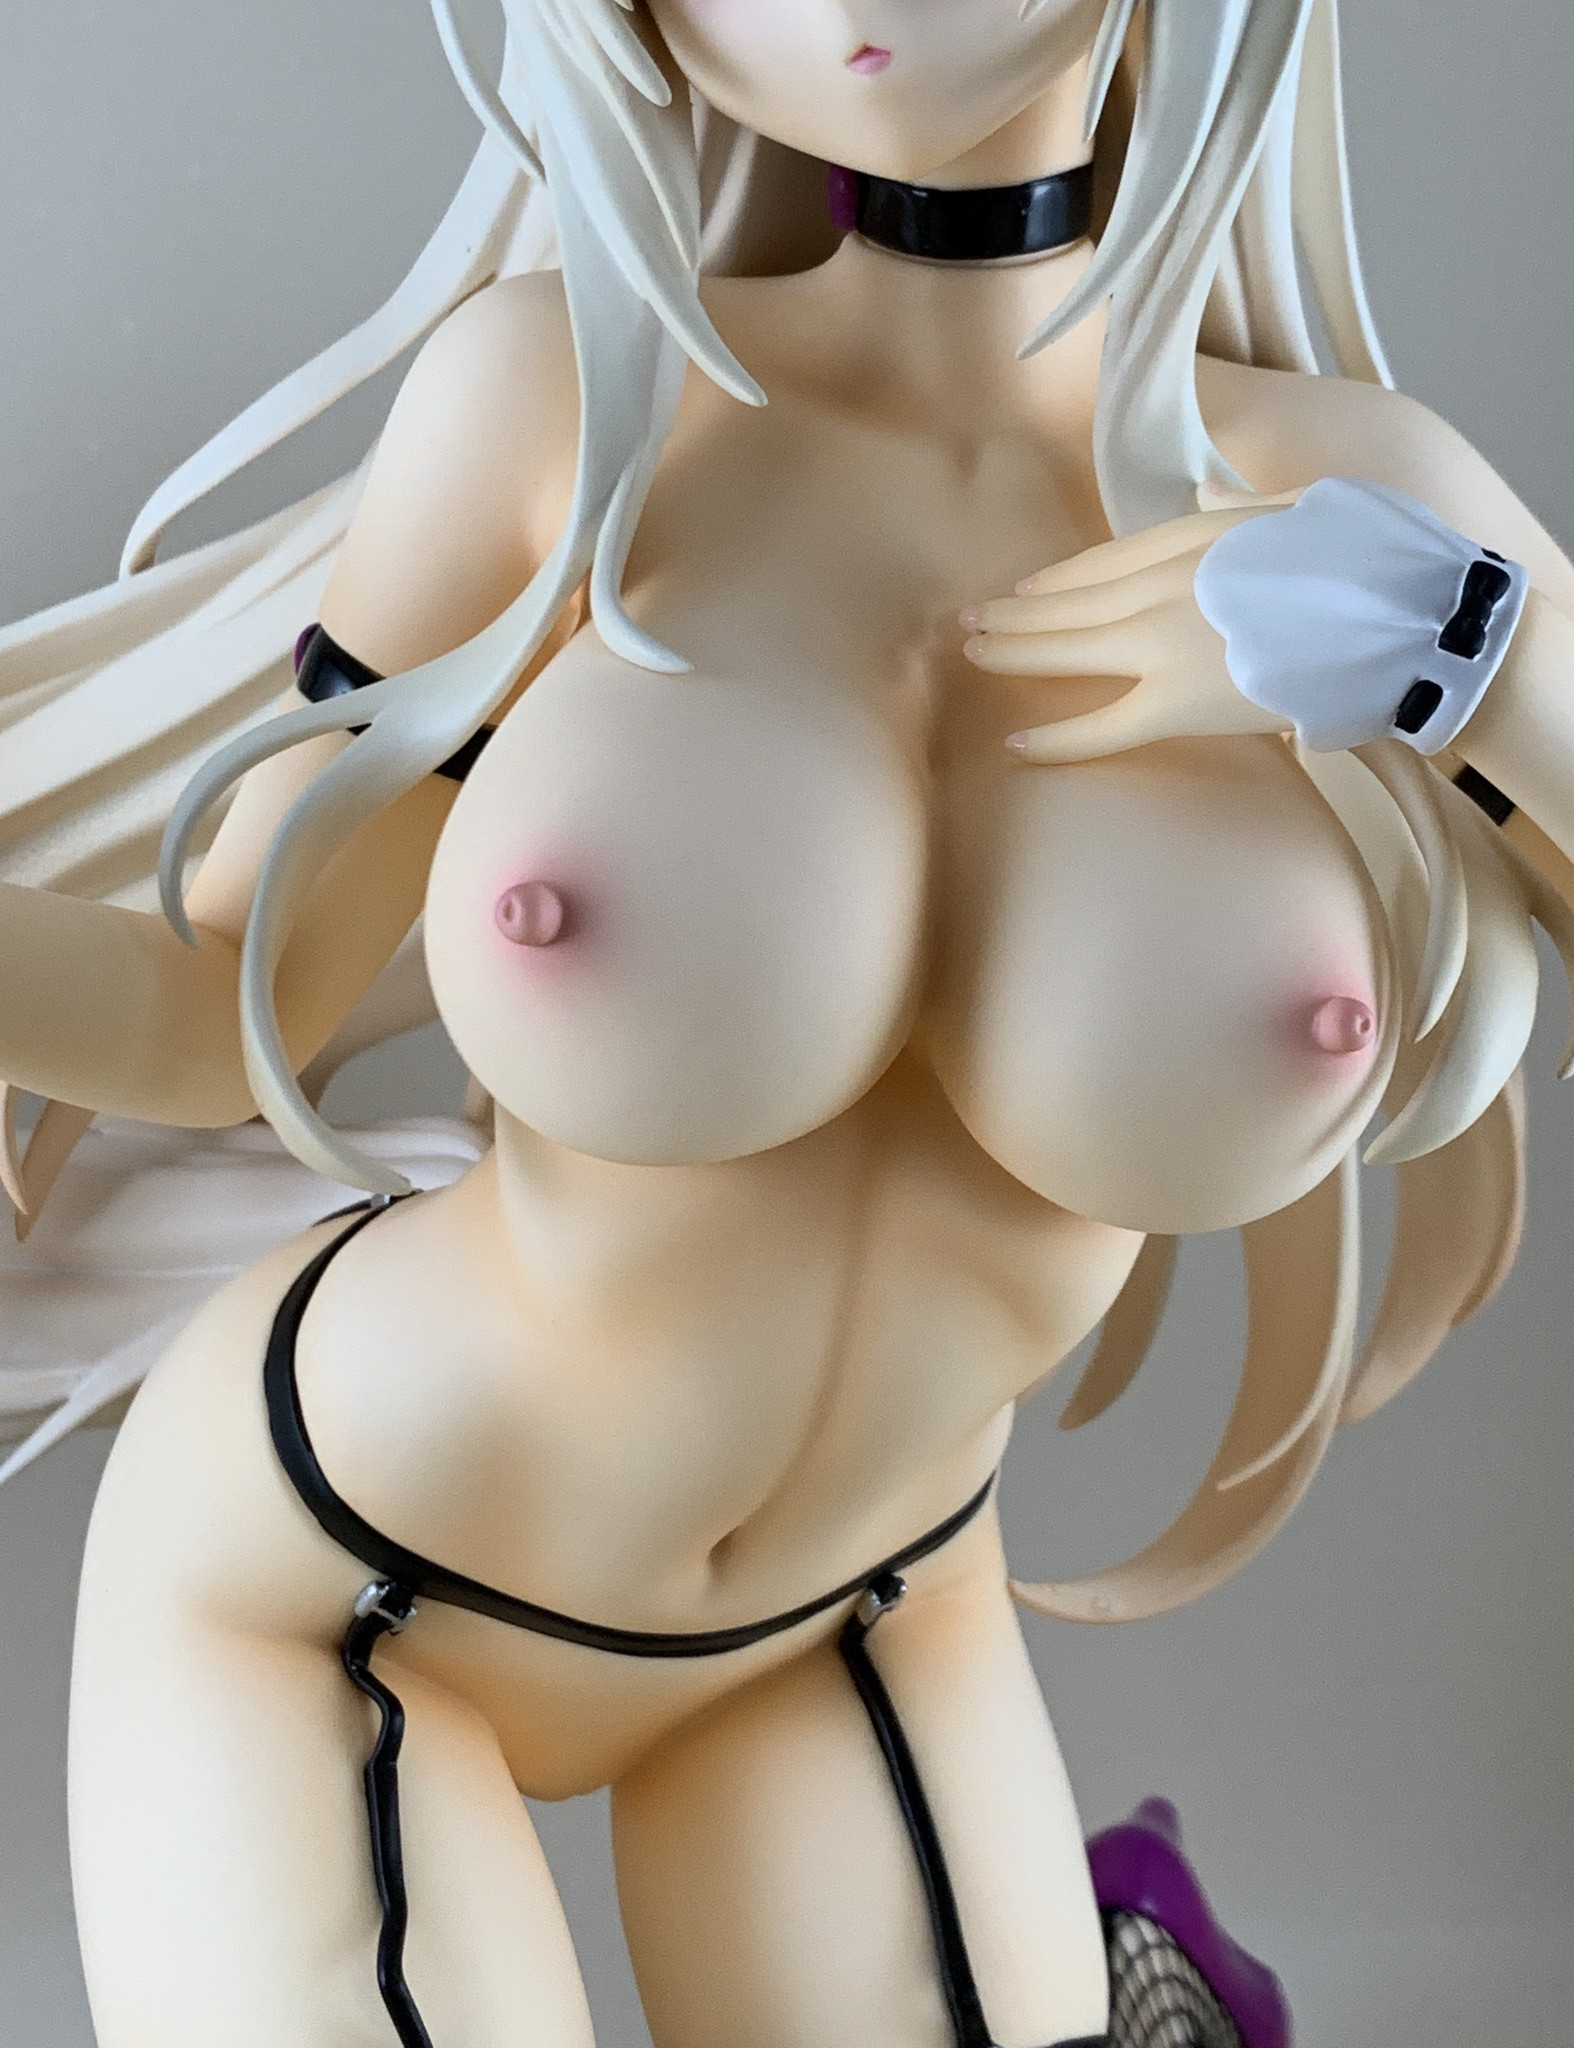 https://static.myfigurecollection.net/upload/pictures/2020/08/16/2497138.jpeg